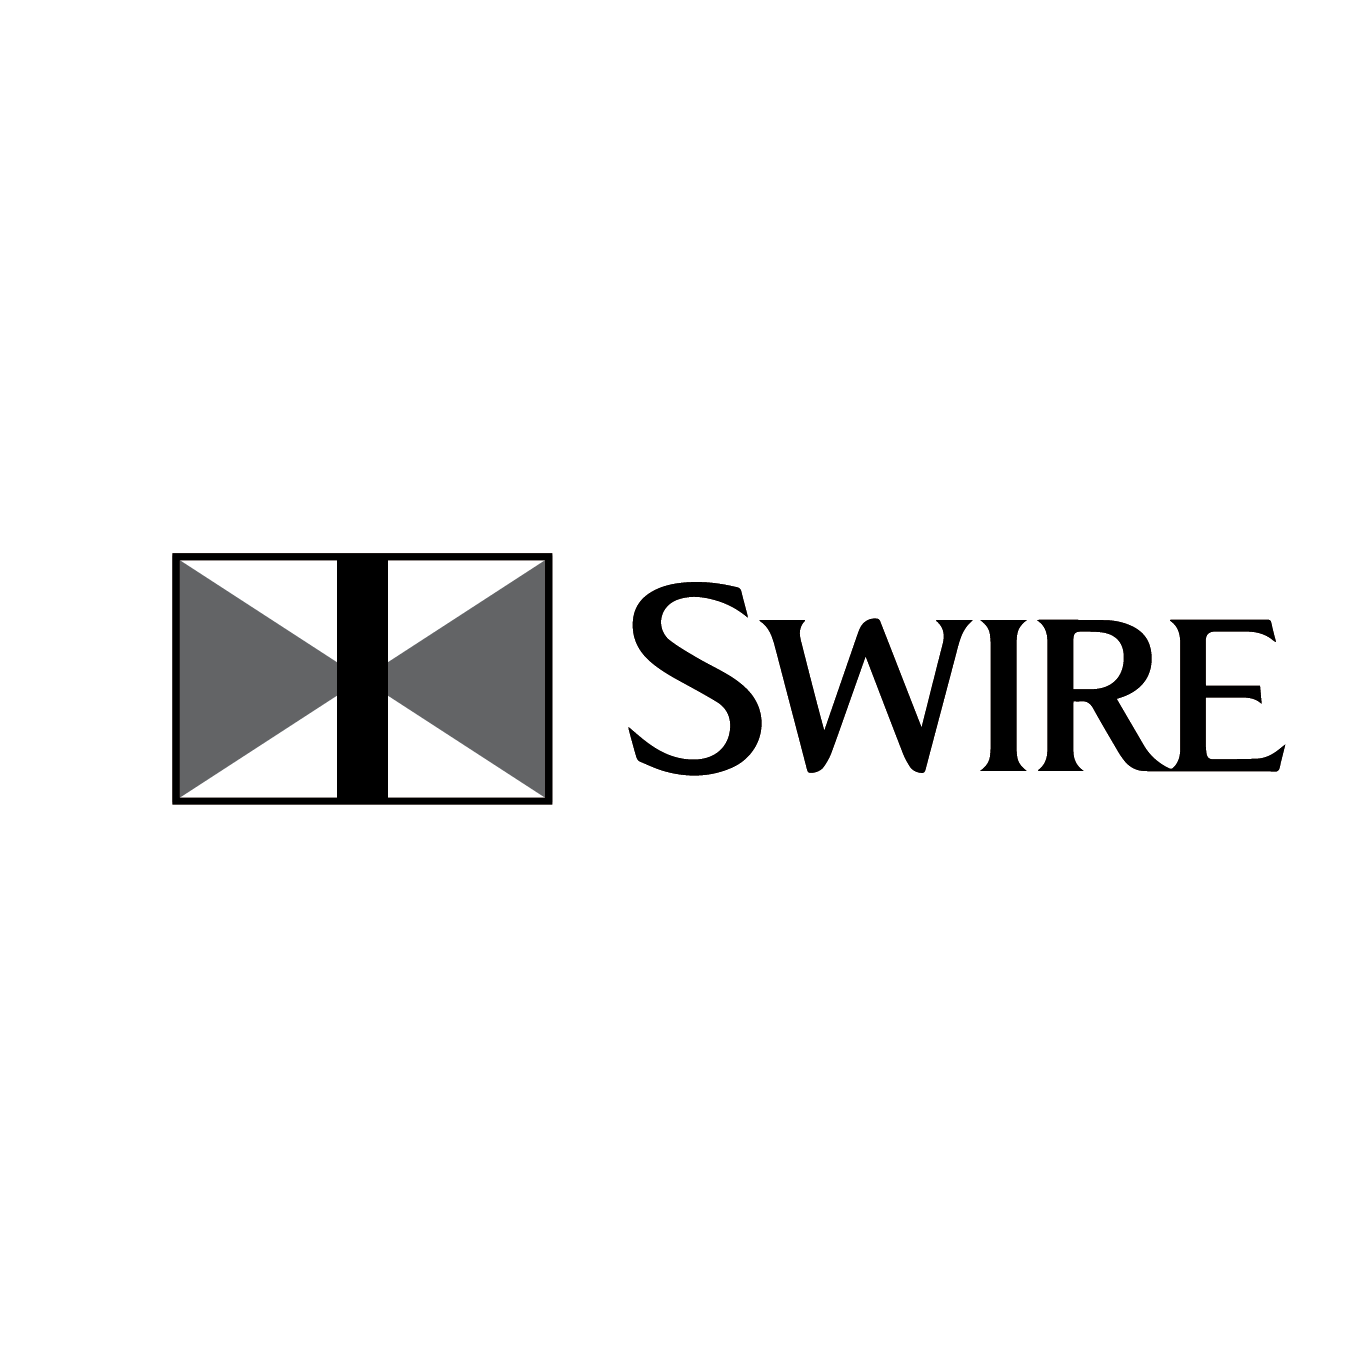 Swire.png